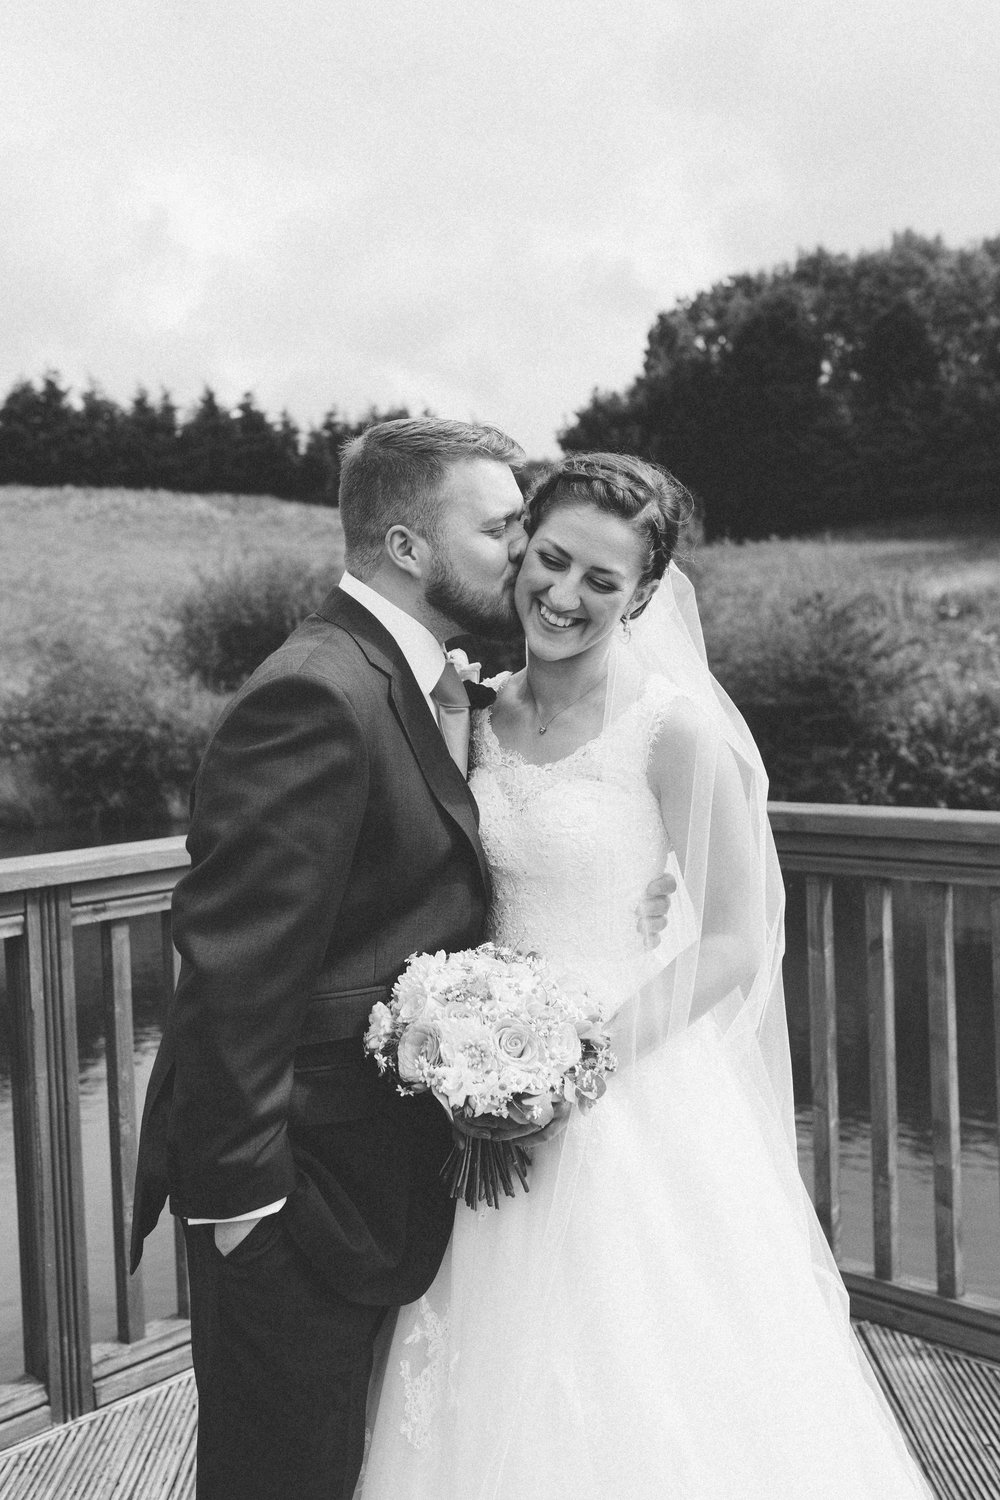 Kathryn-and-Mike-Wedding-Highlights-63.jpg